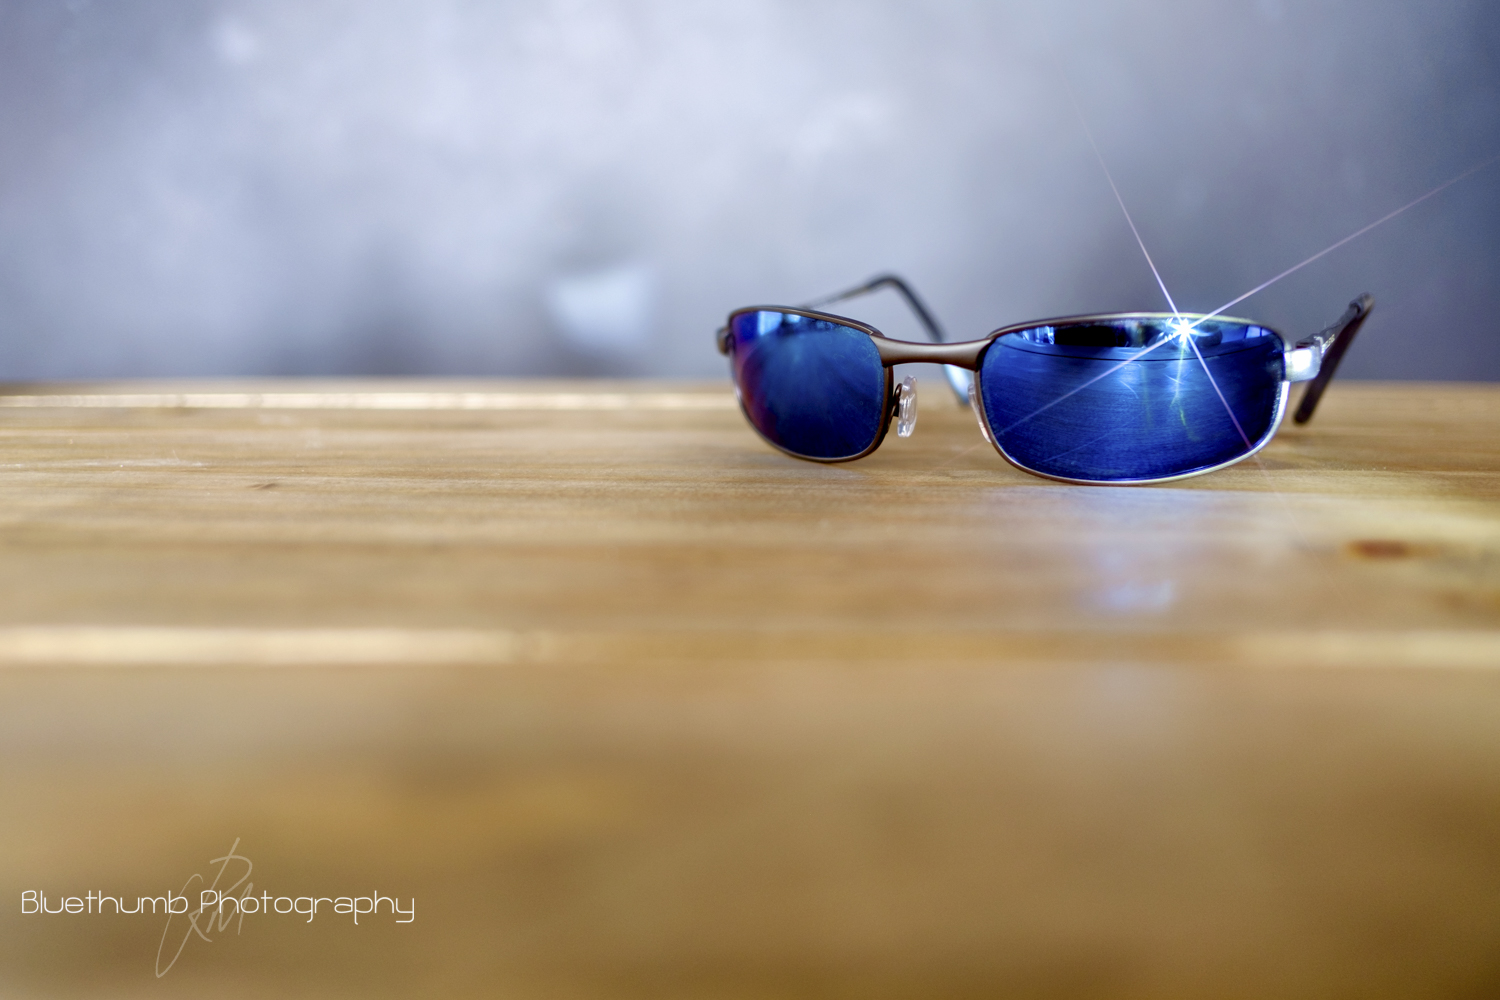 This was shot again on the XT1 and 18mm at f/2 ISO 200 1.3 sec. spot metered for the table top and camera on a tripod. The light source for this was a Led Lenser Cree LED torch shone at an angle directly onto the sunglasses lens.